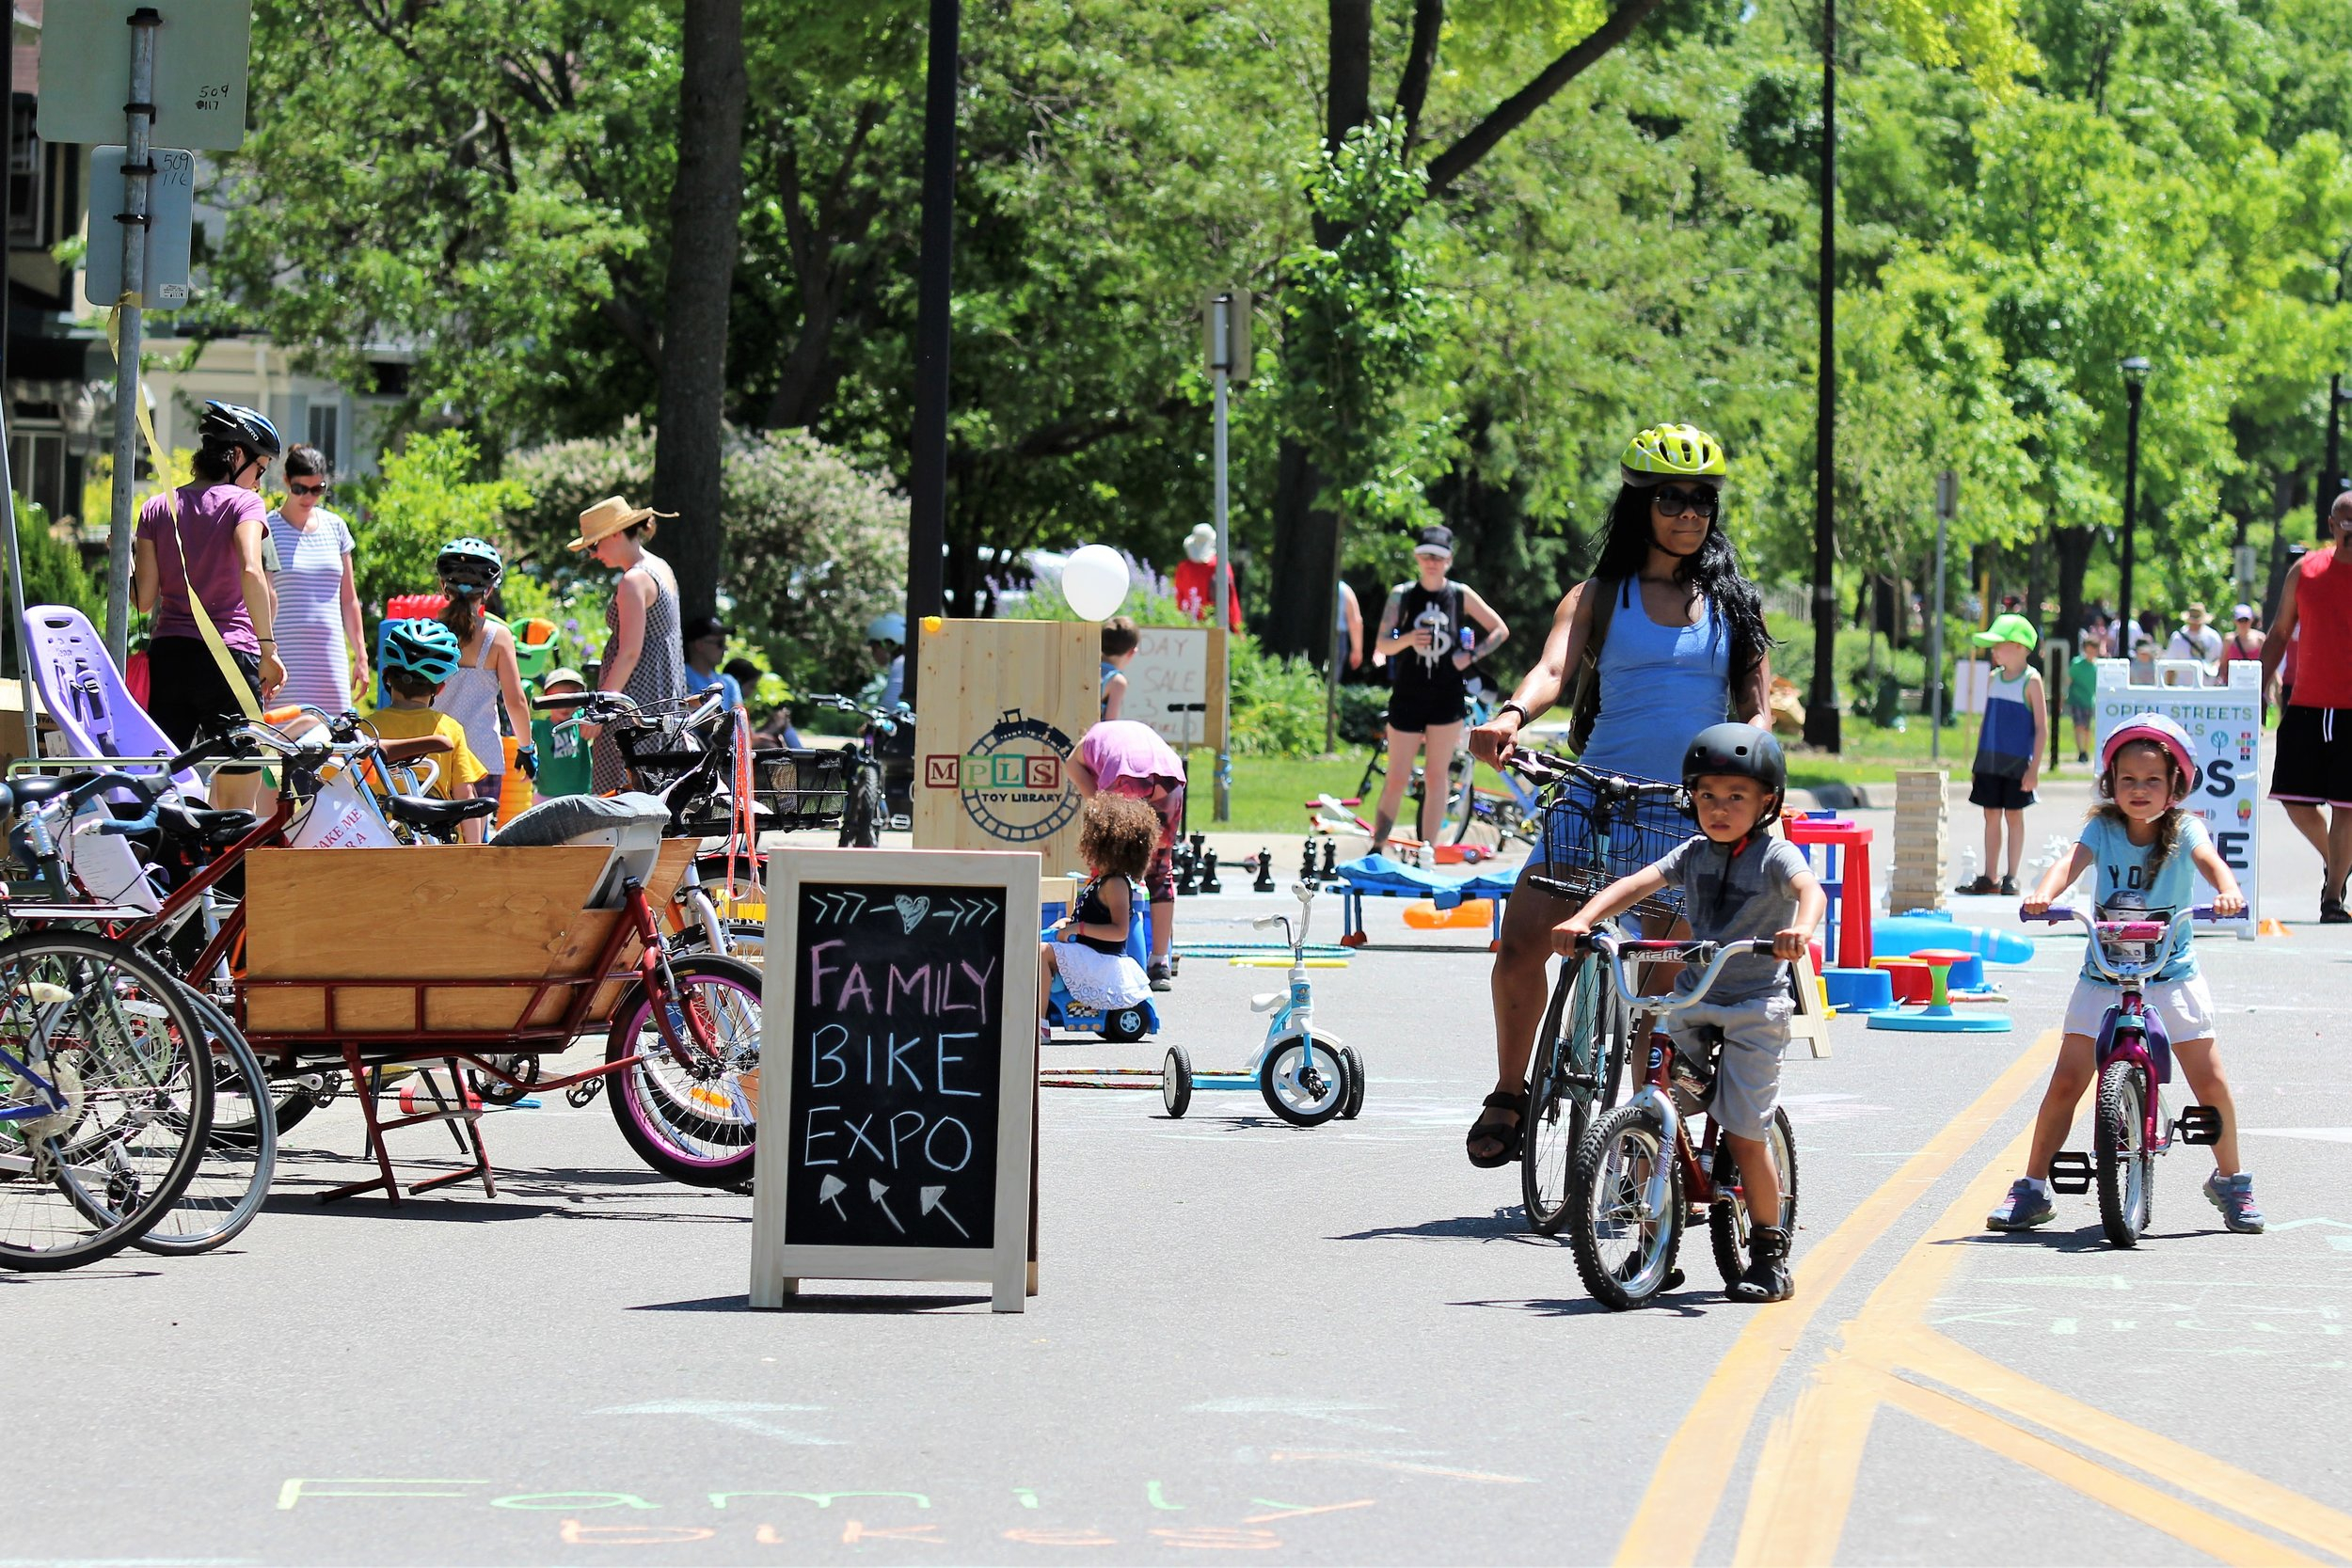 COLORADO CLASSIC MAYOR'S RIDE - Calling all kids!!!Sunday August 25th10:15 AM to 11:00 AM - Open to all kids and their parents/guardiansRoads stay closed to cars and open to bikes and pedestrians until 12:30Stay to watch the Pro Women take to the streets of Denver at 1:30!